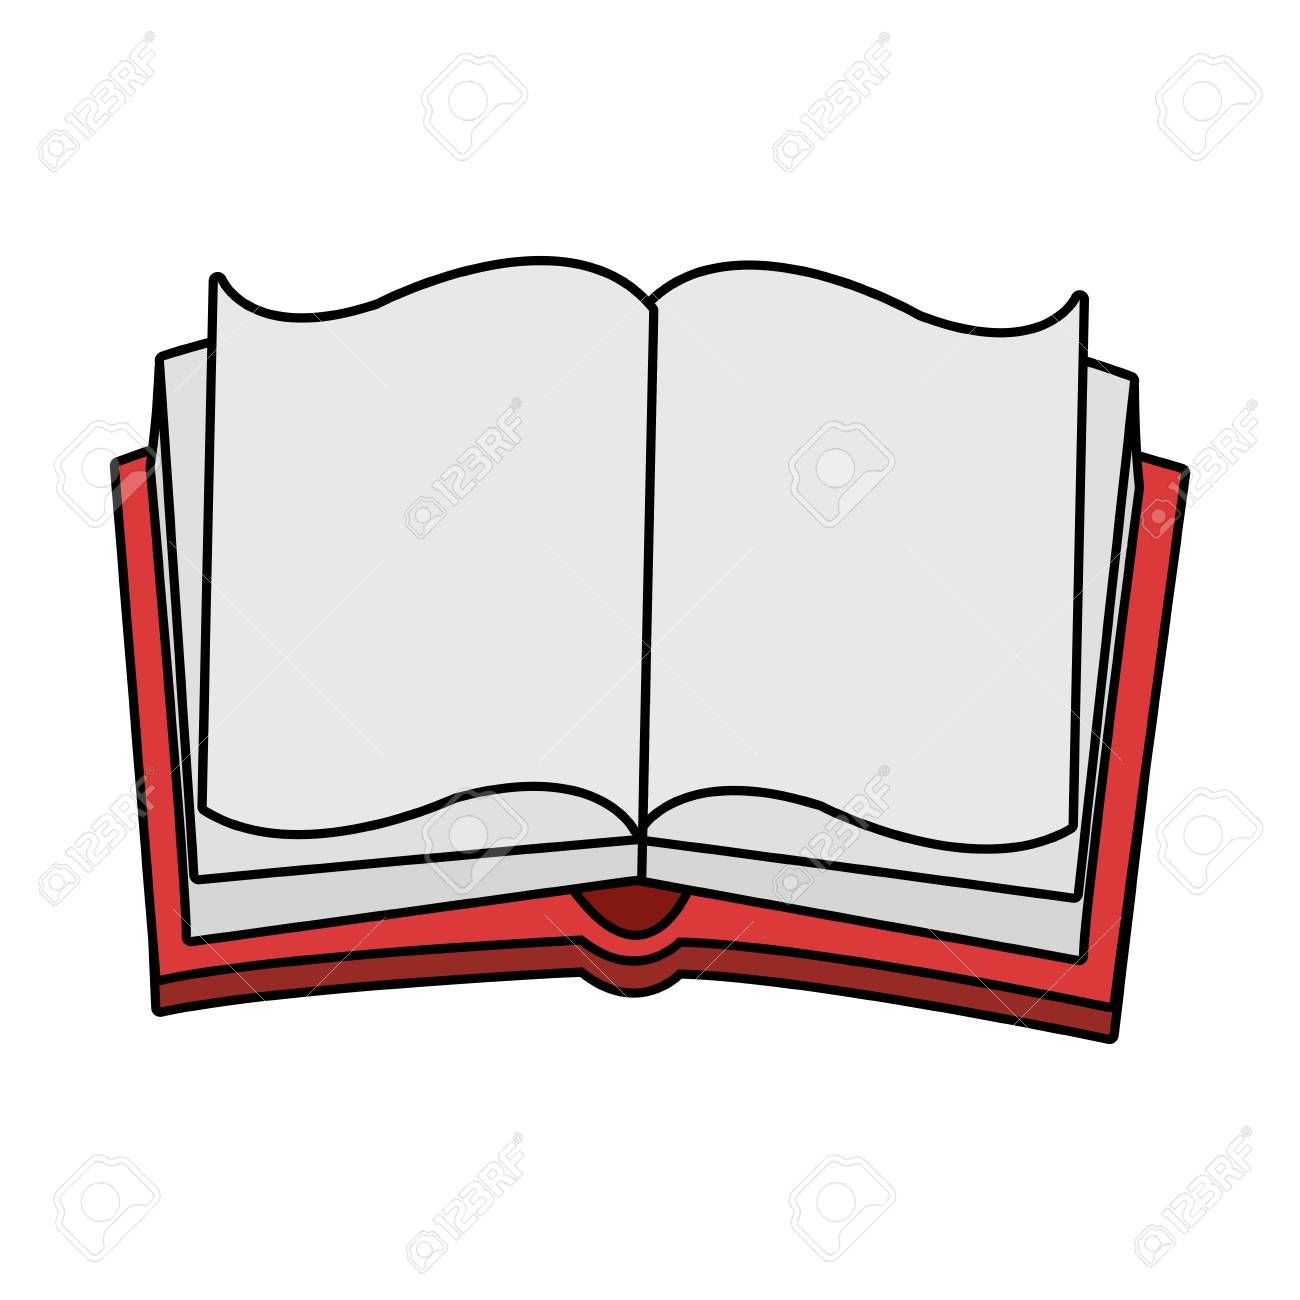 Opened Book Over White Background Vector Illustration